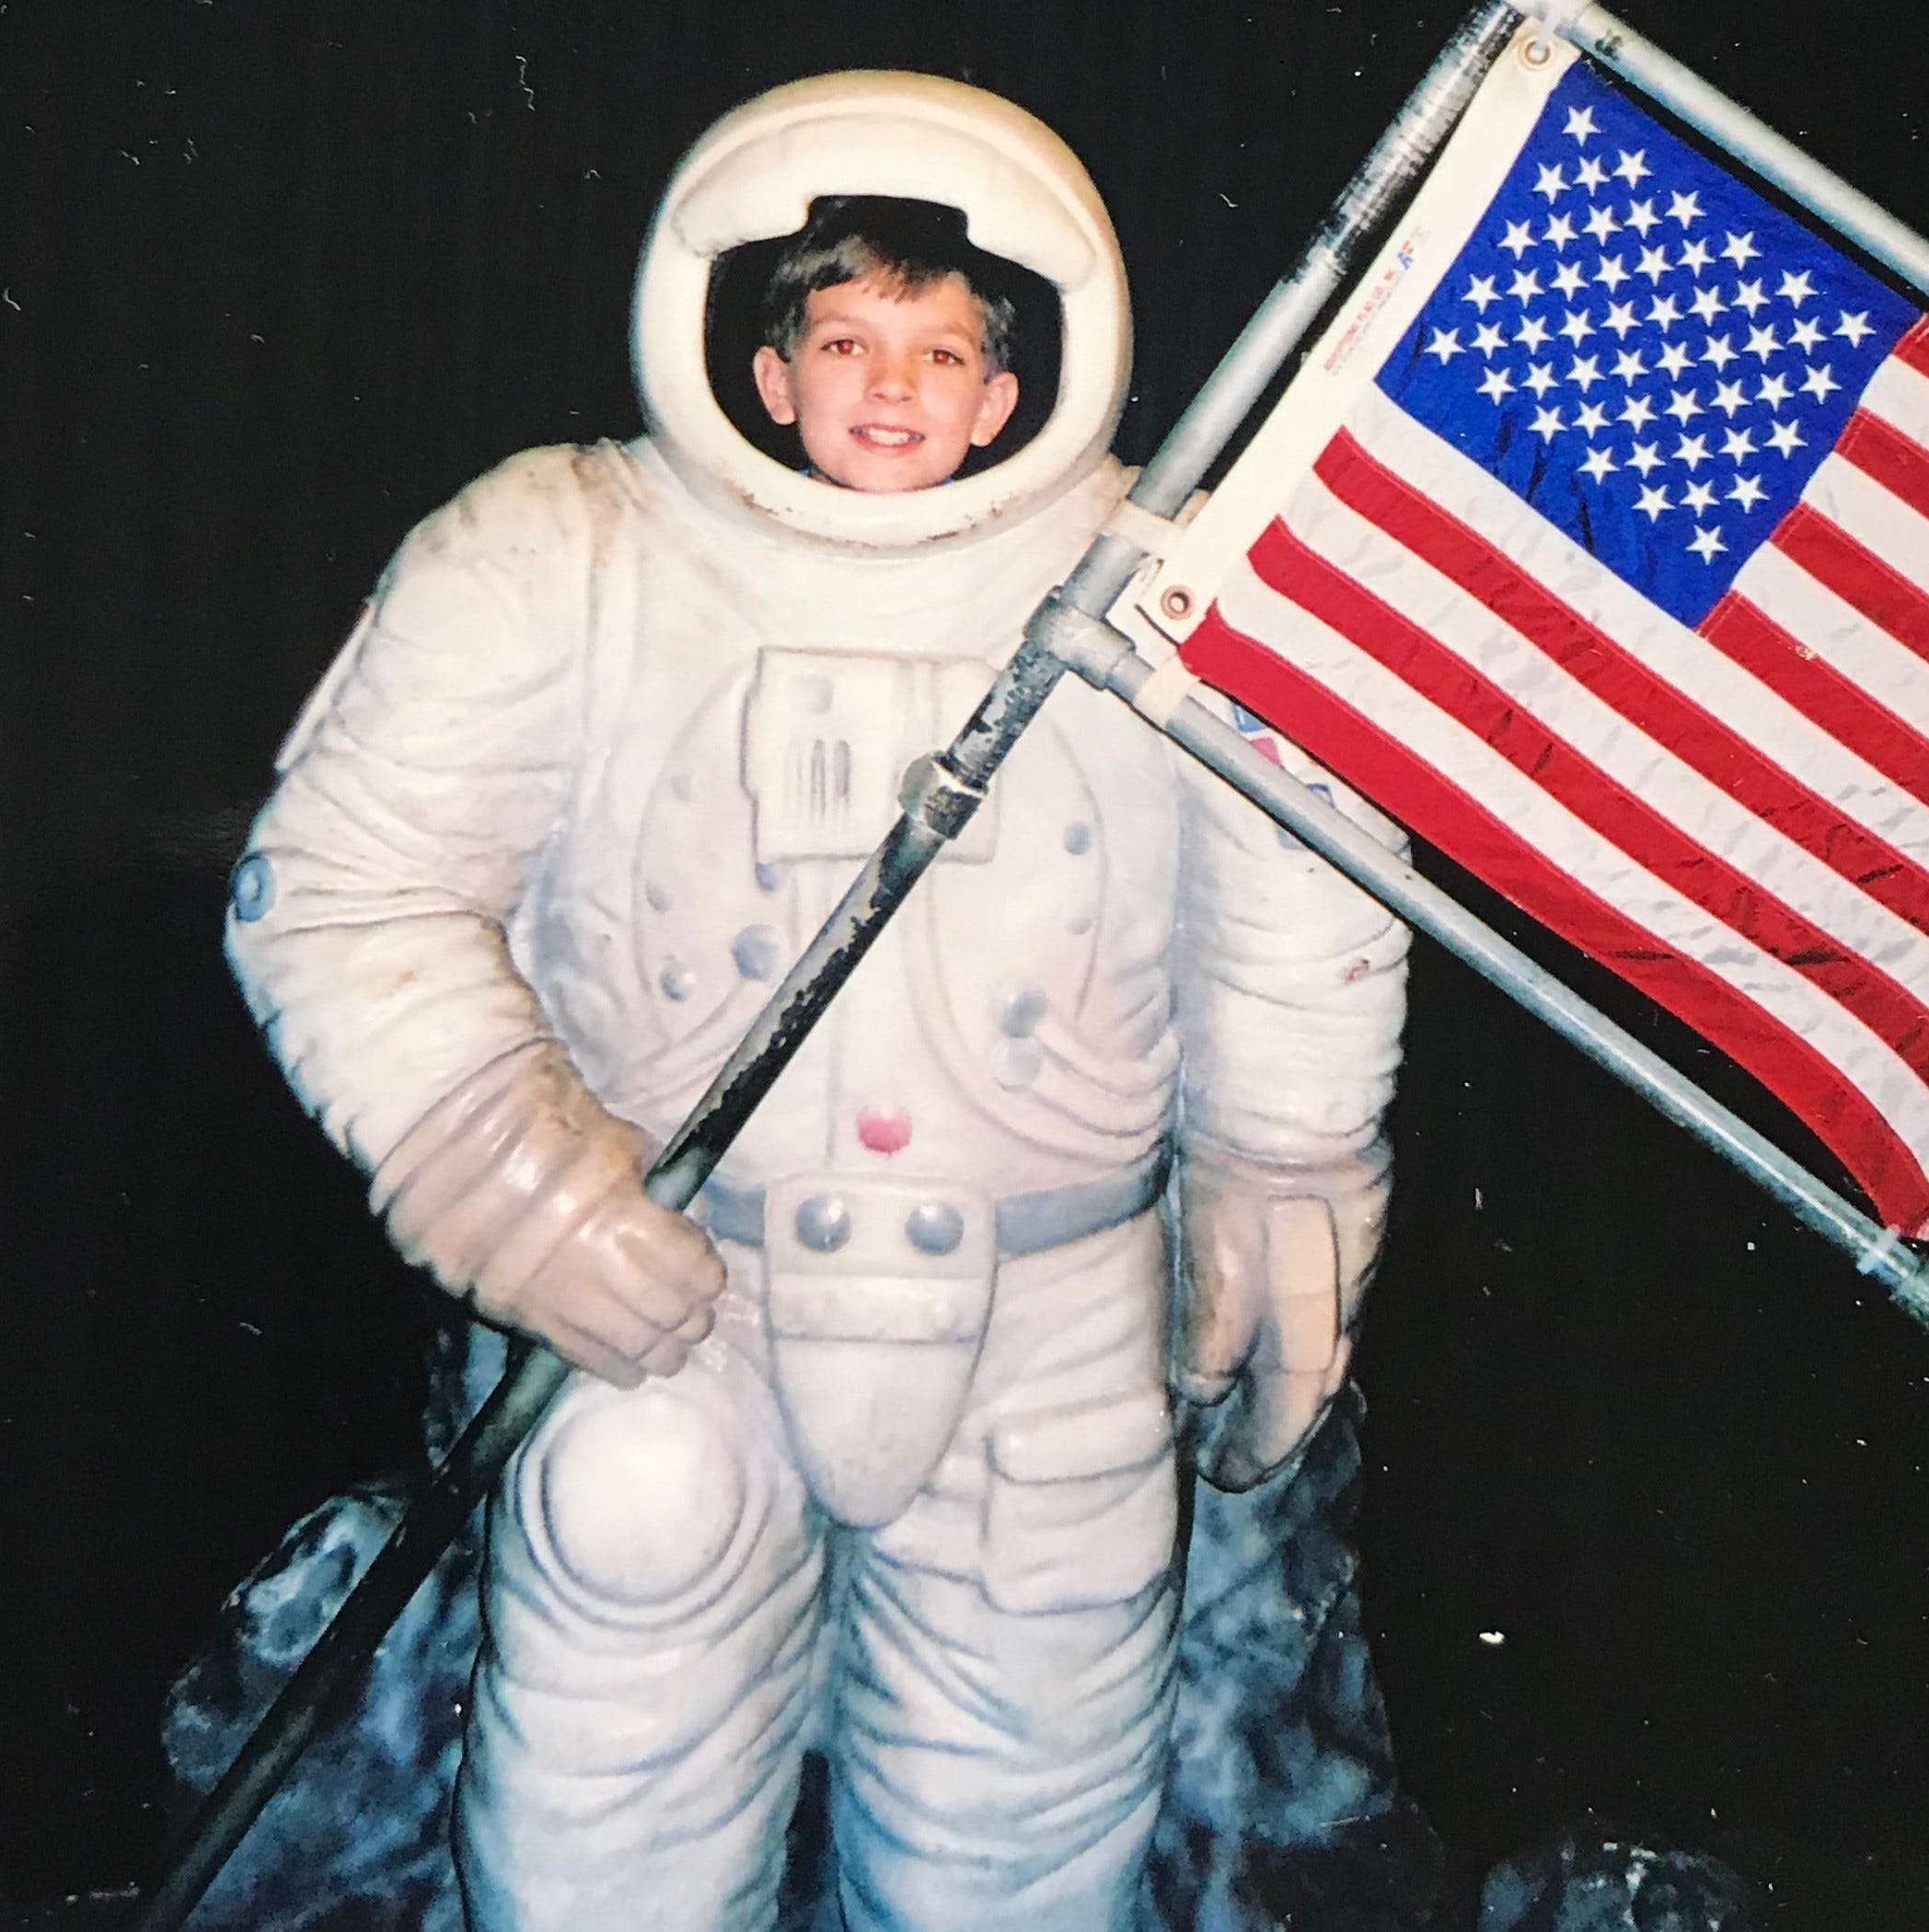 Former De Pere athlete Andrew Rose shoots for the stars, lands at NASA